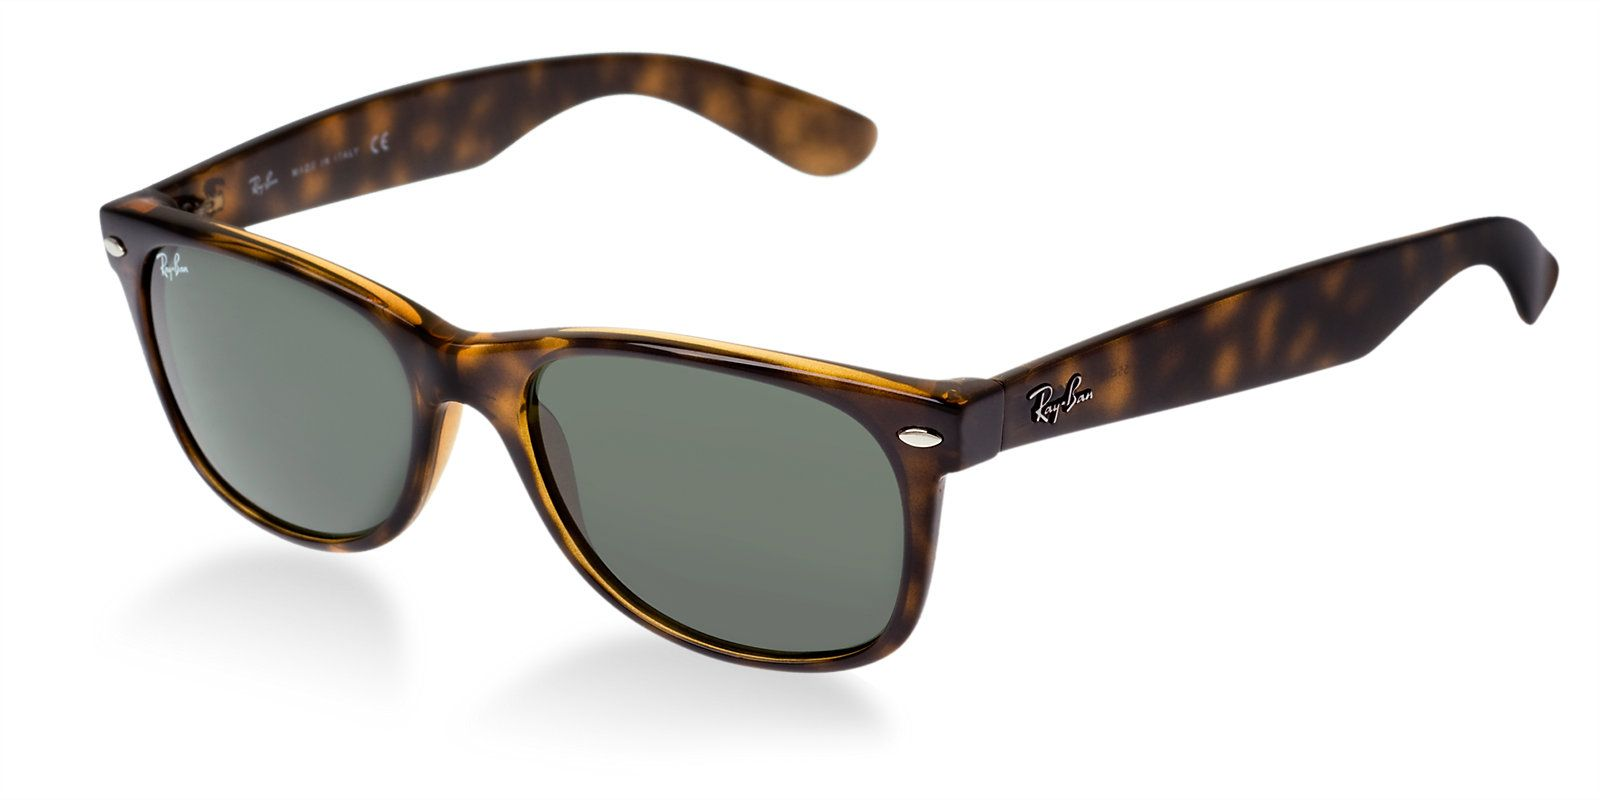 6952e1ece0c Cheap Ray Ban Sunglasses For Sale Online